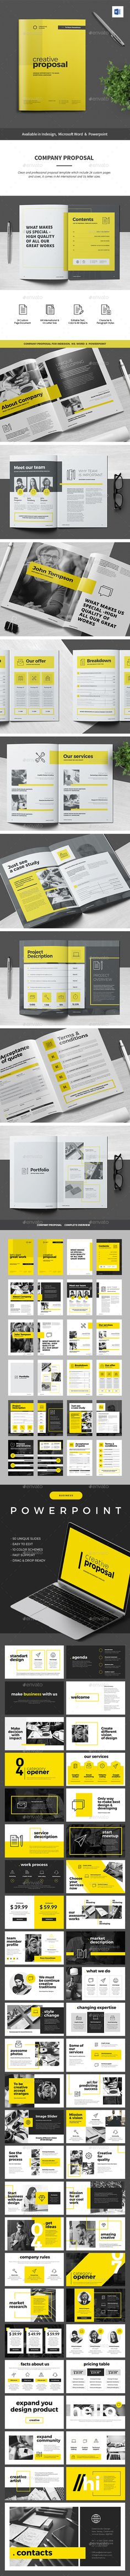 #Proposal - Proposals & #Invoices #Stationery Download here: https://graphicriver.net/item/proposal/19472049?ref=alena994